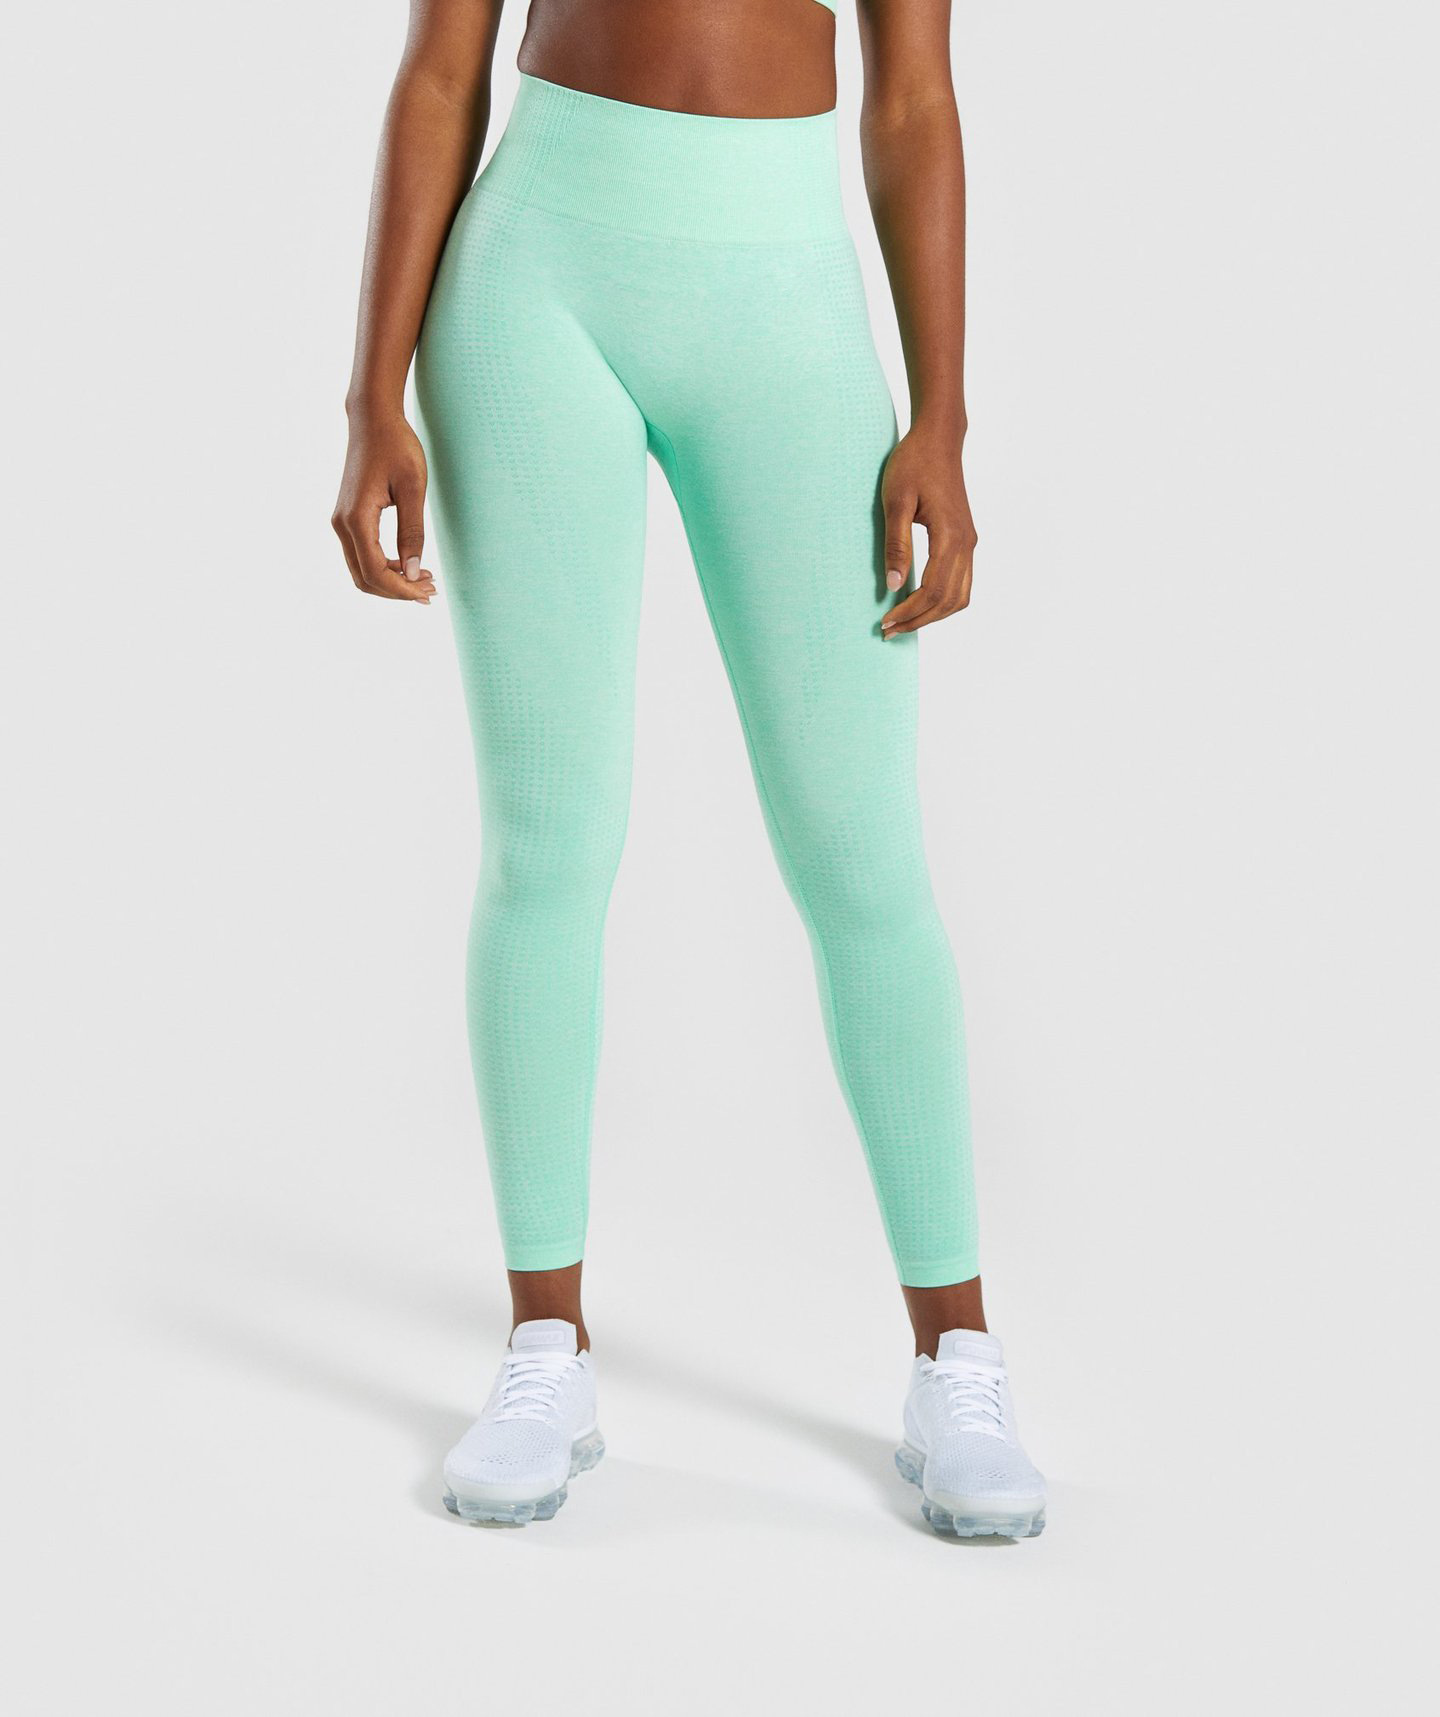 Vital_Seamless_Leggings_Sour_P